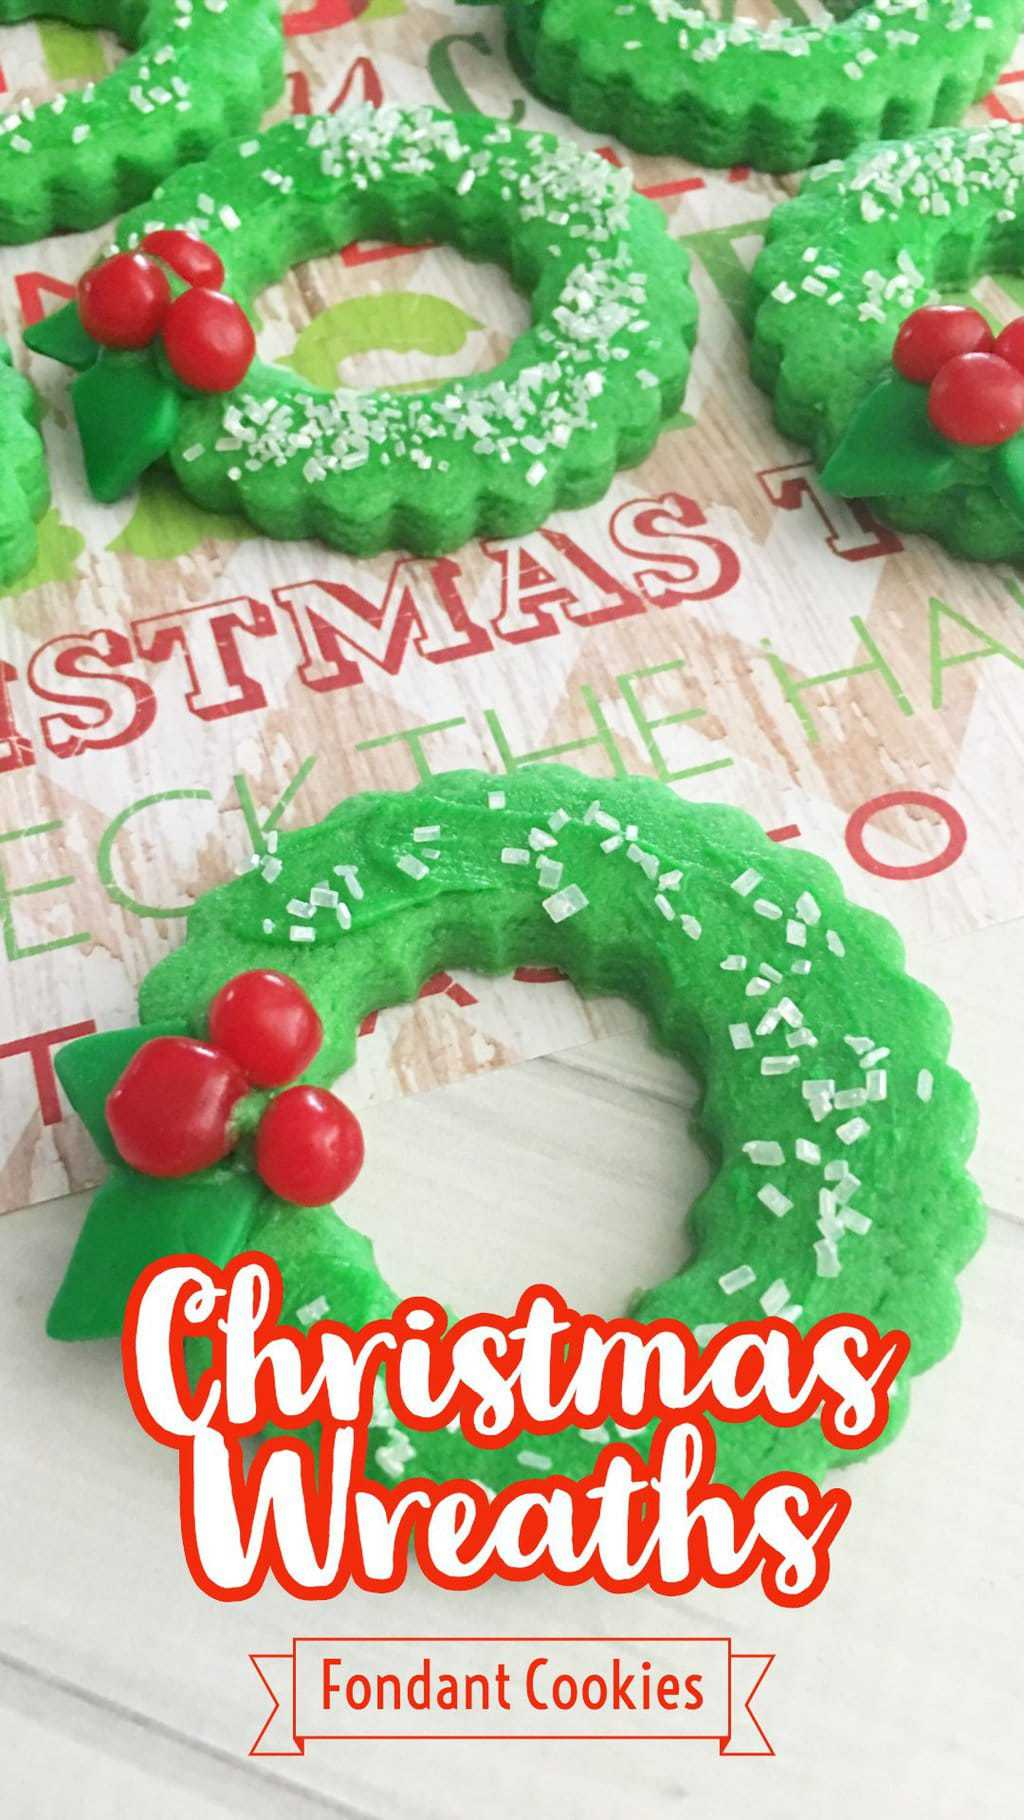 Christmas Wreath Cookies, Christmas Cookies with Fondant